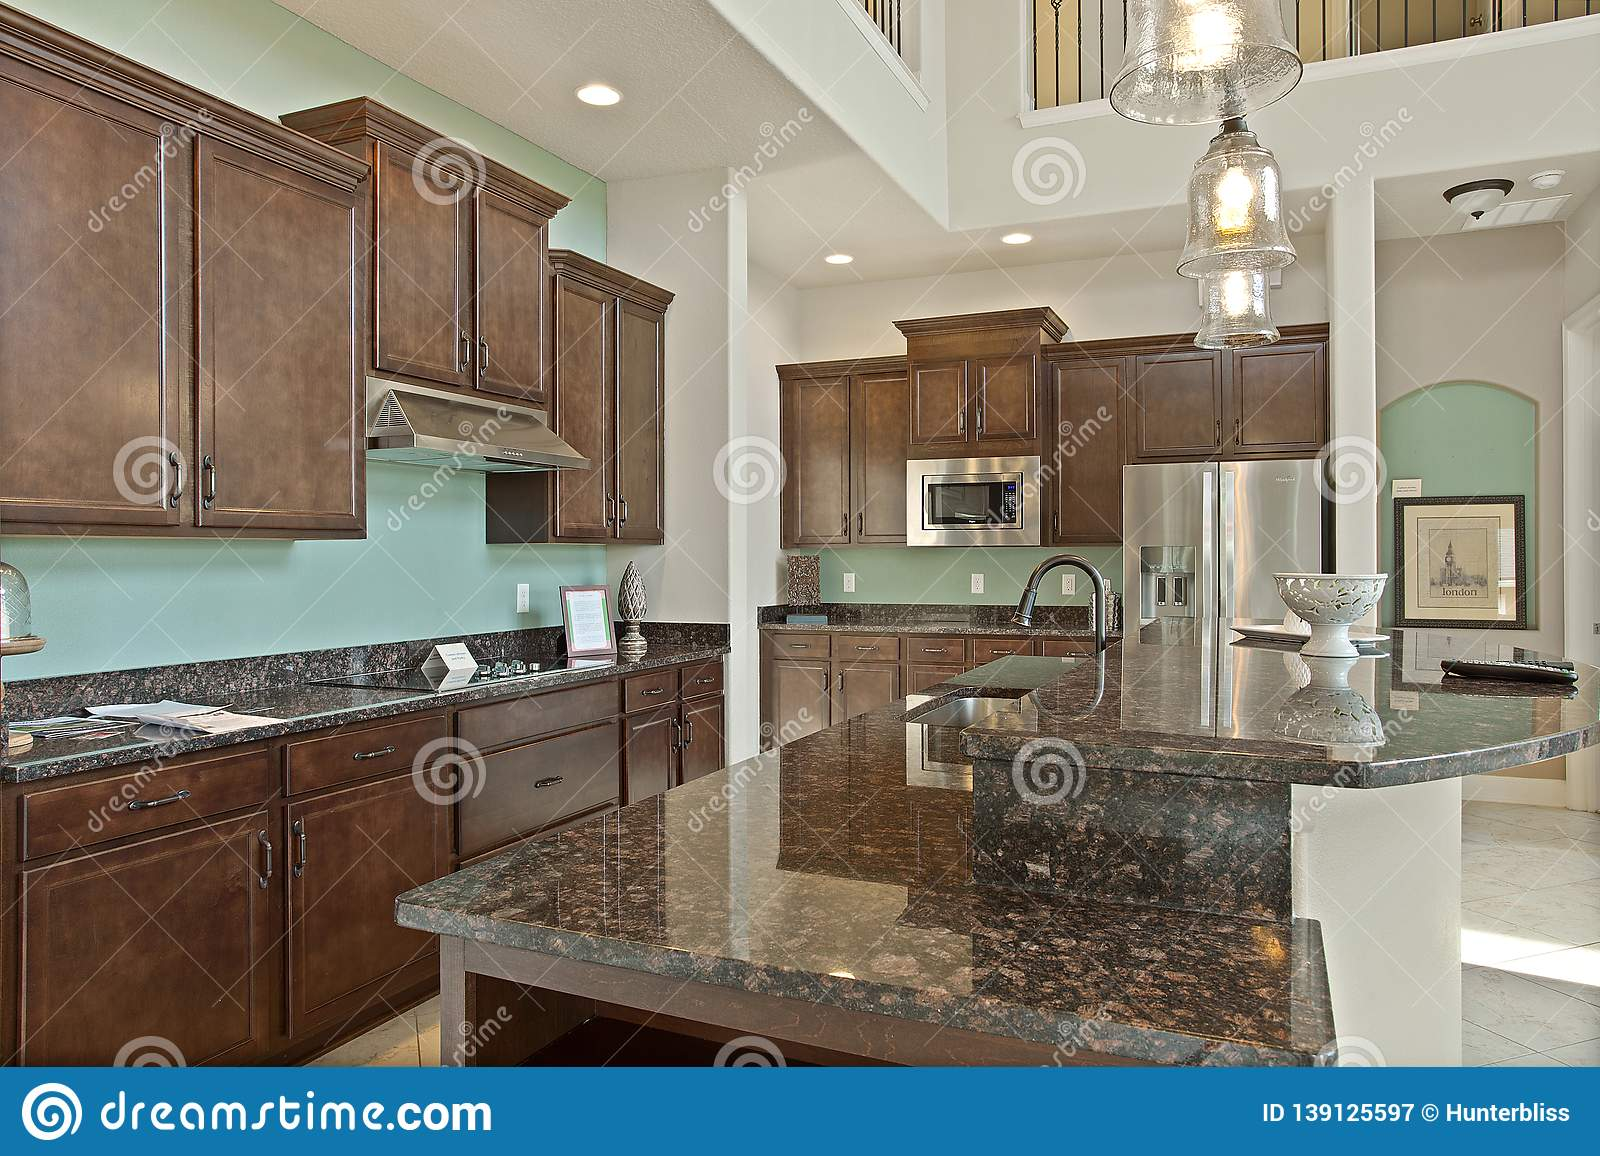 Modern Kitchen Home Interior With Hardwood And Wooden Cabinets ... on ideal kitchen tiles, ideal kitchen flooring, ideal kitchen cabinets,